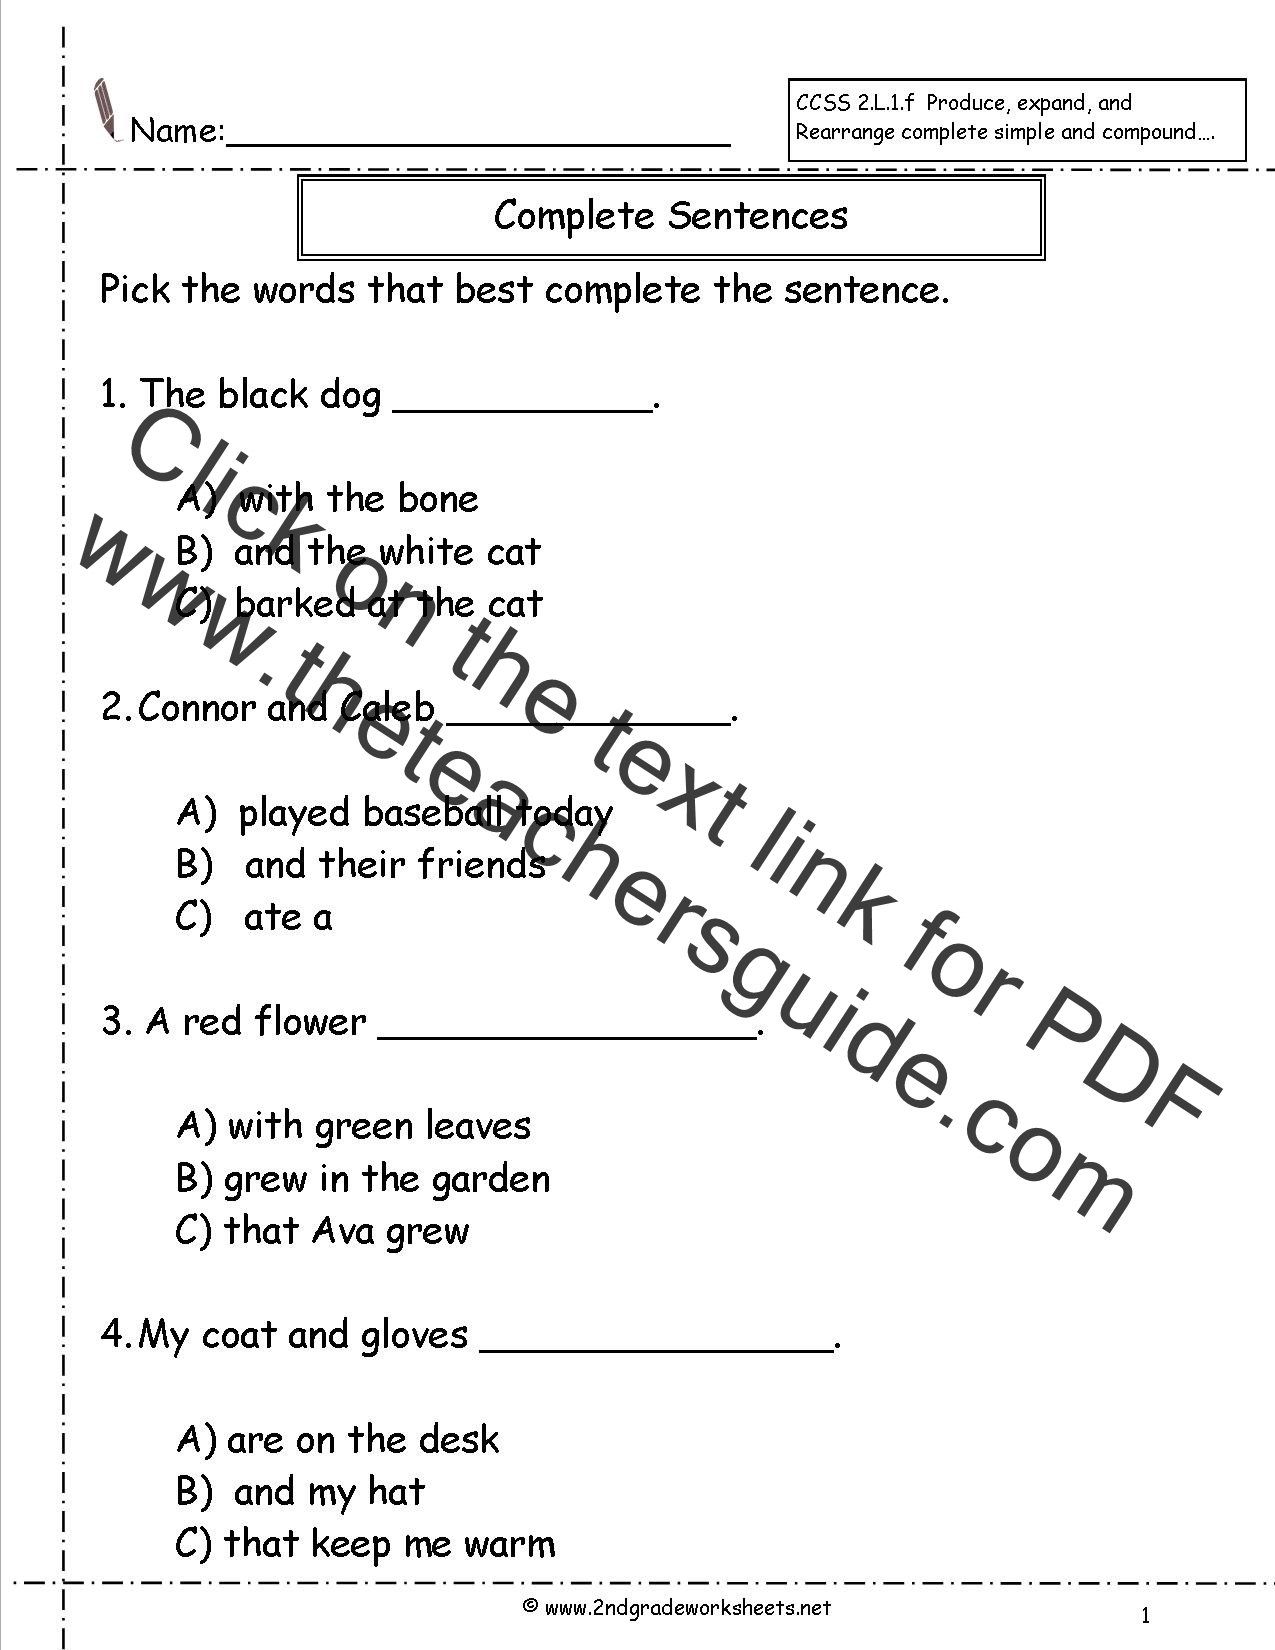 Complete or Incomplete Sentences Worksheet 1